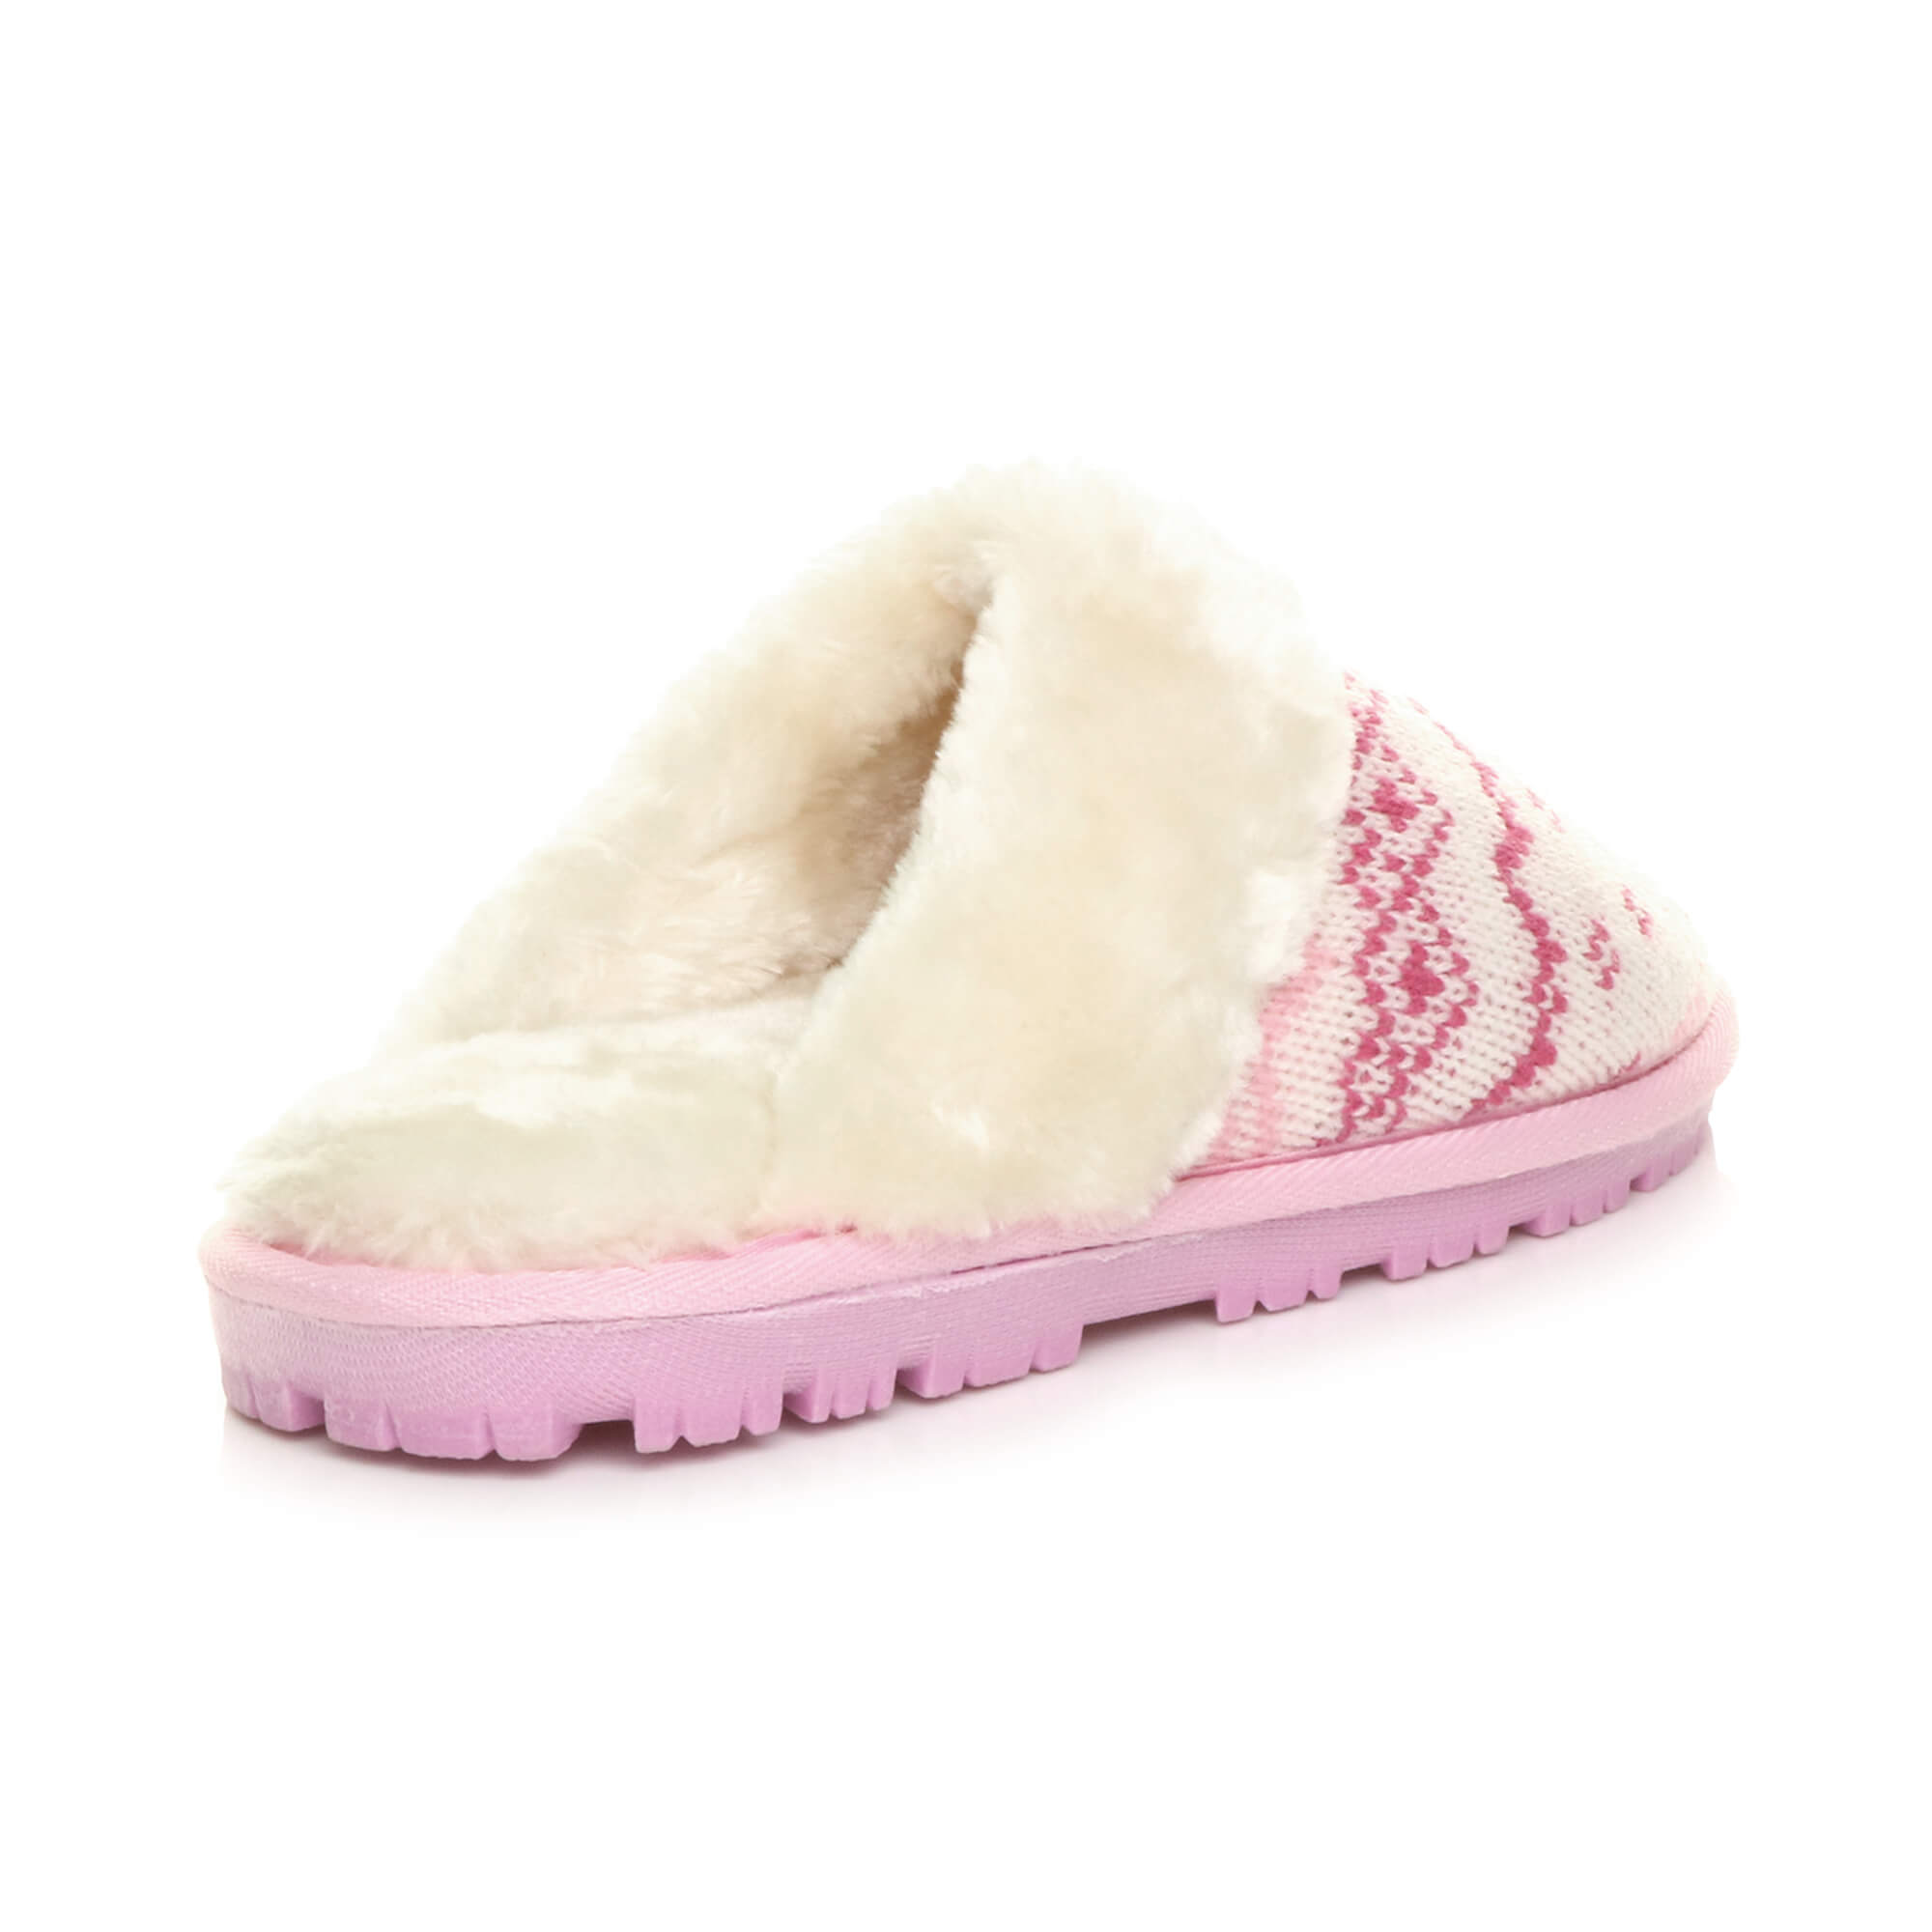 WOMENS-LADIES-FLAT-FUR-LINED-COMFORTABLE-WINTER-MULES-SLIPPERS-HOUSE-SHOES-SIZE thumbnail 75